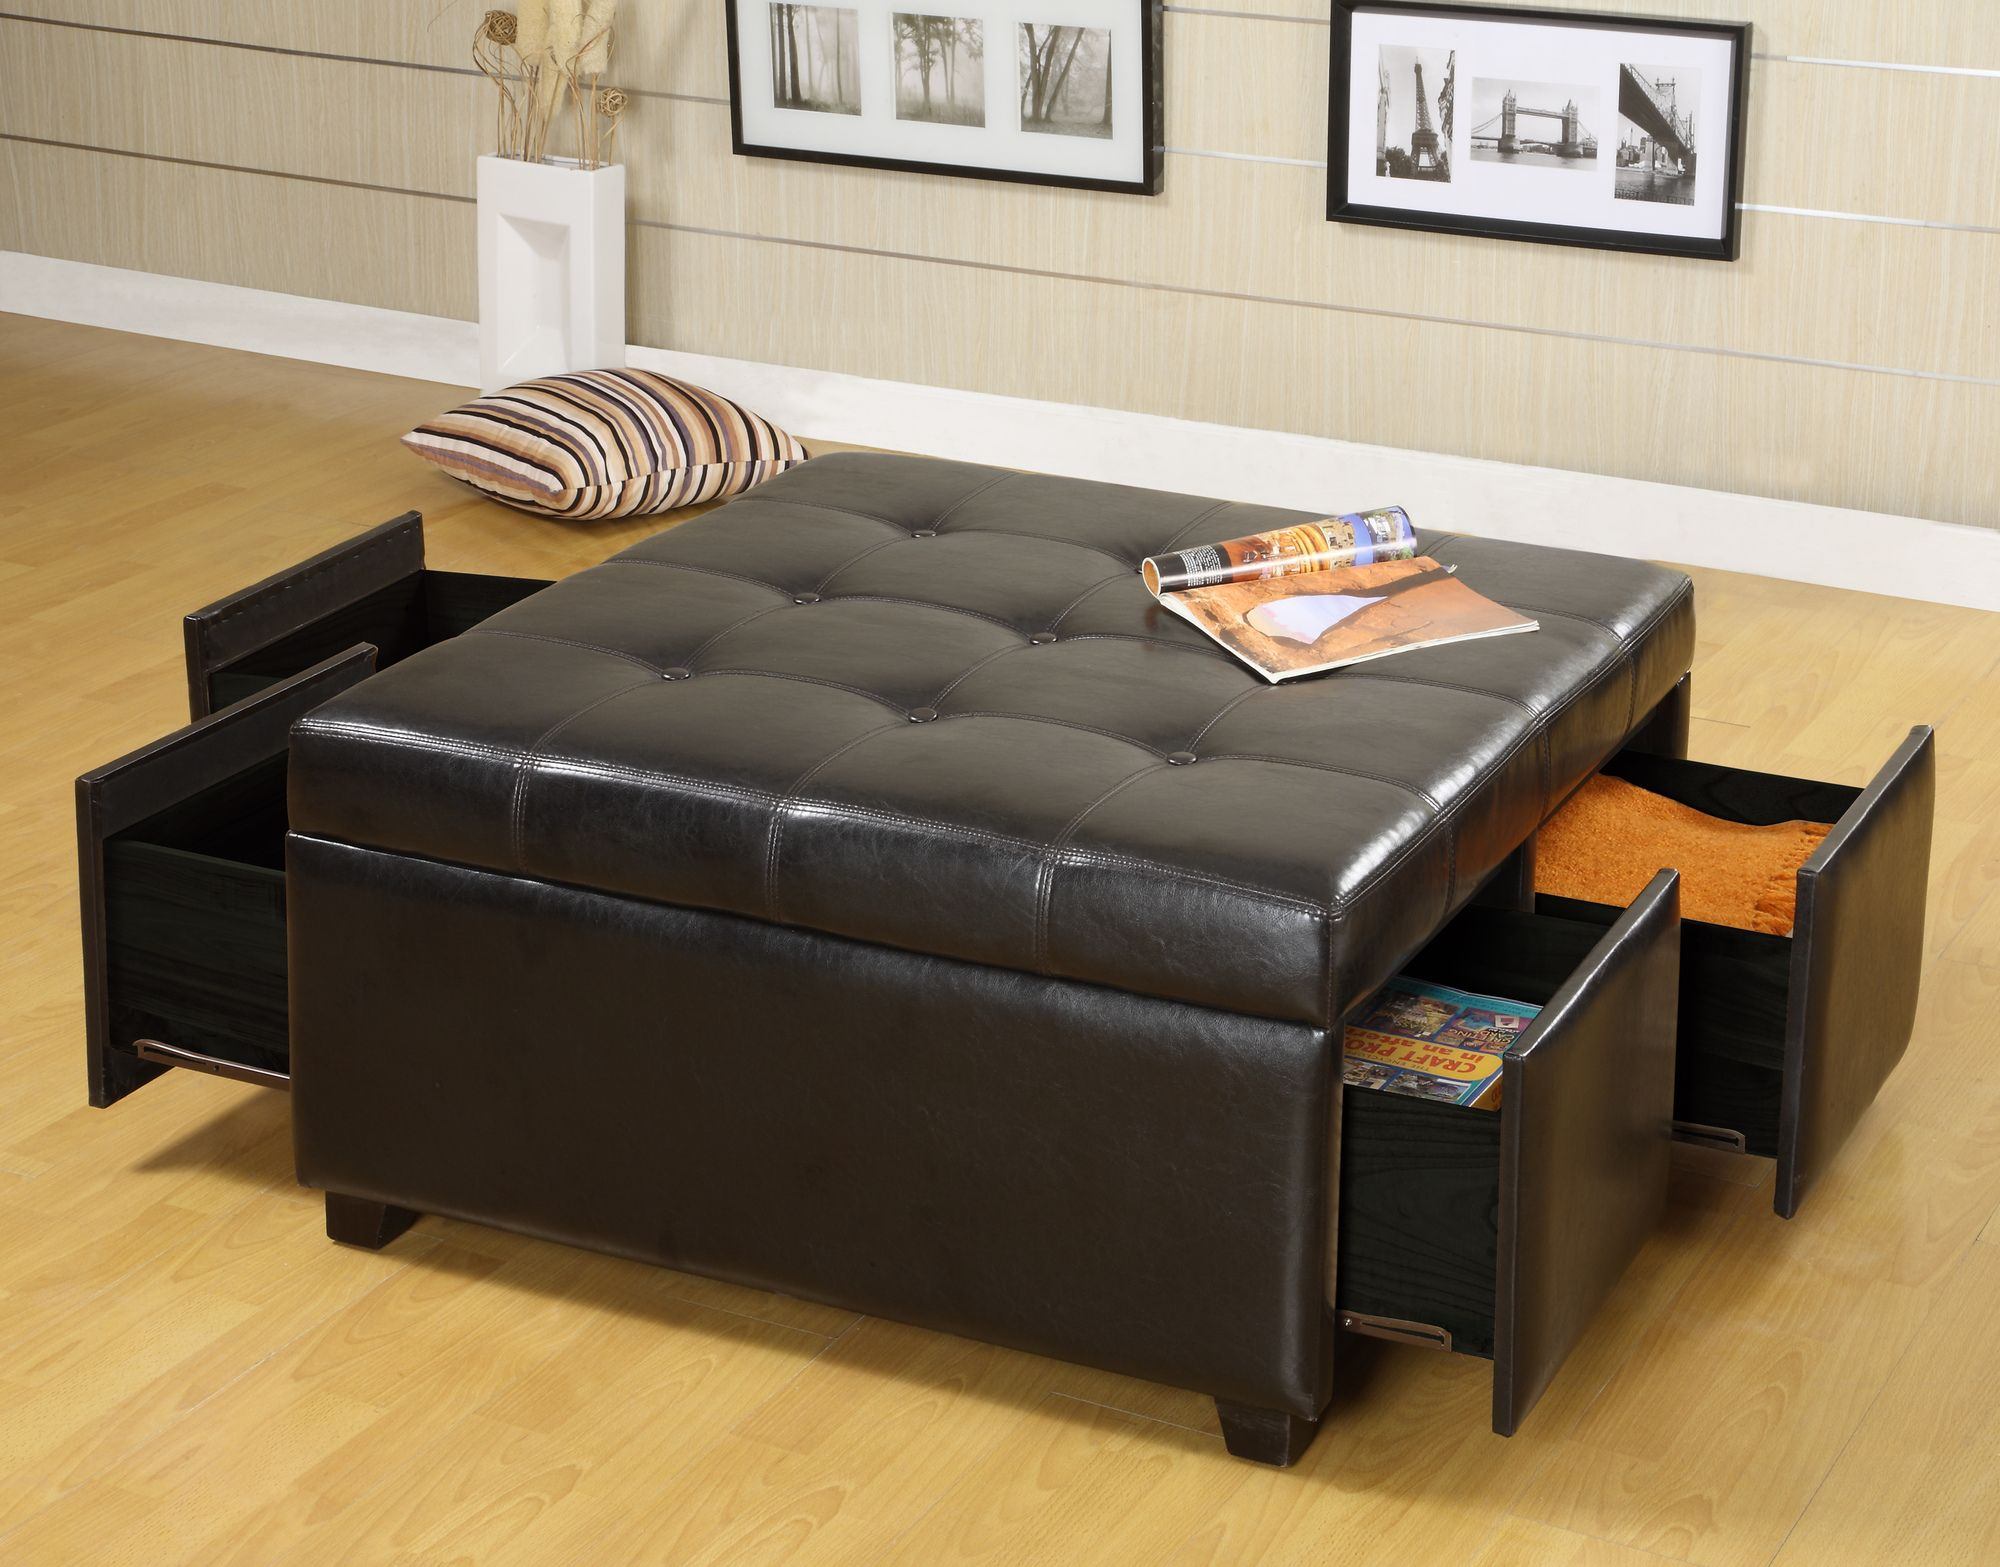 Hokku Designs Petula Bi Cast Leather Storage Ottoman With Four Drawers In Espresso 349 00